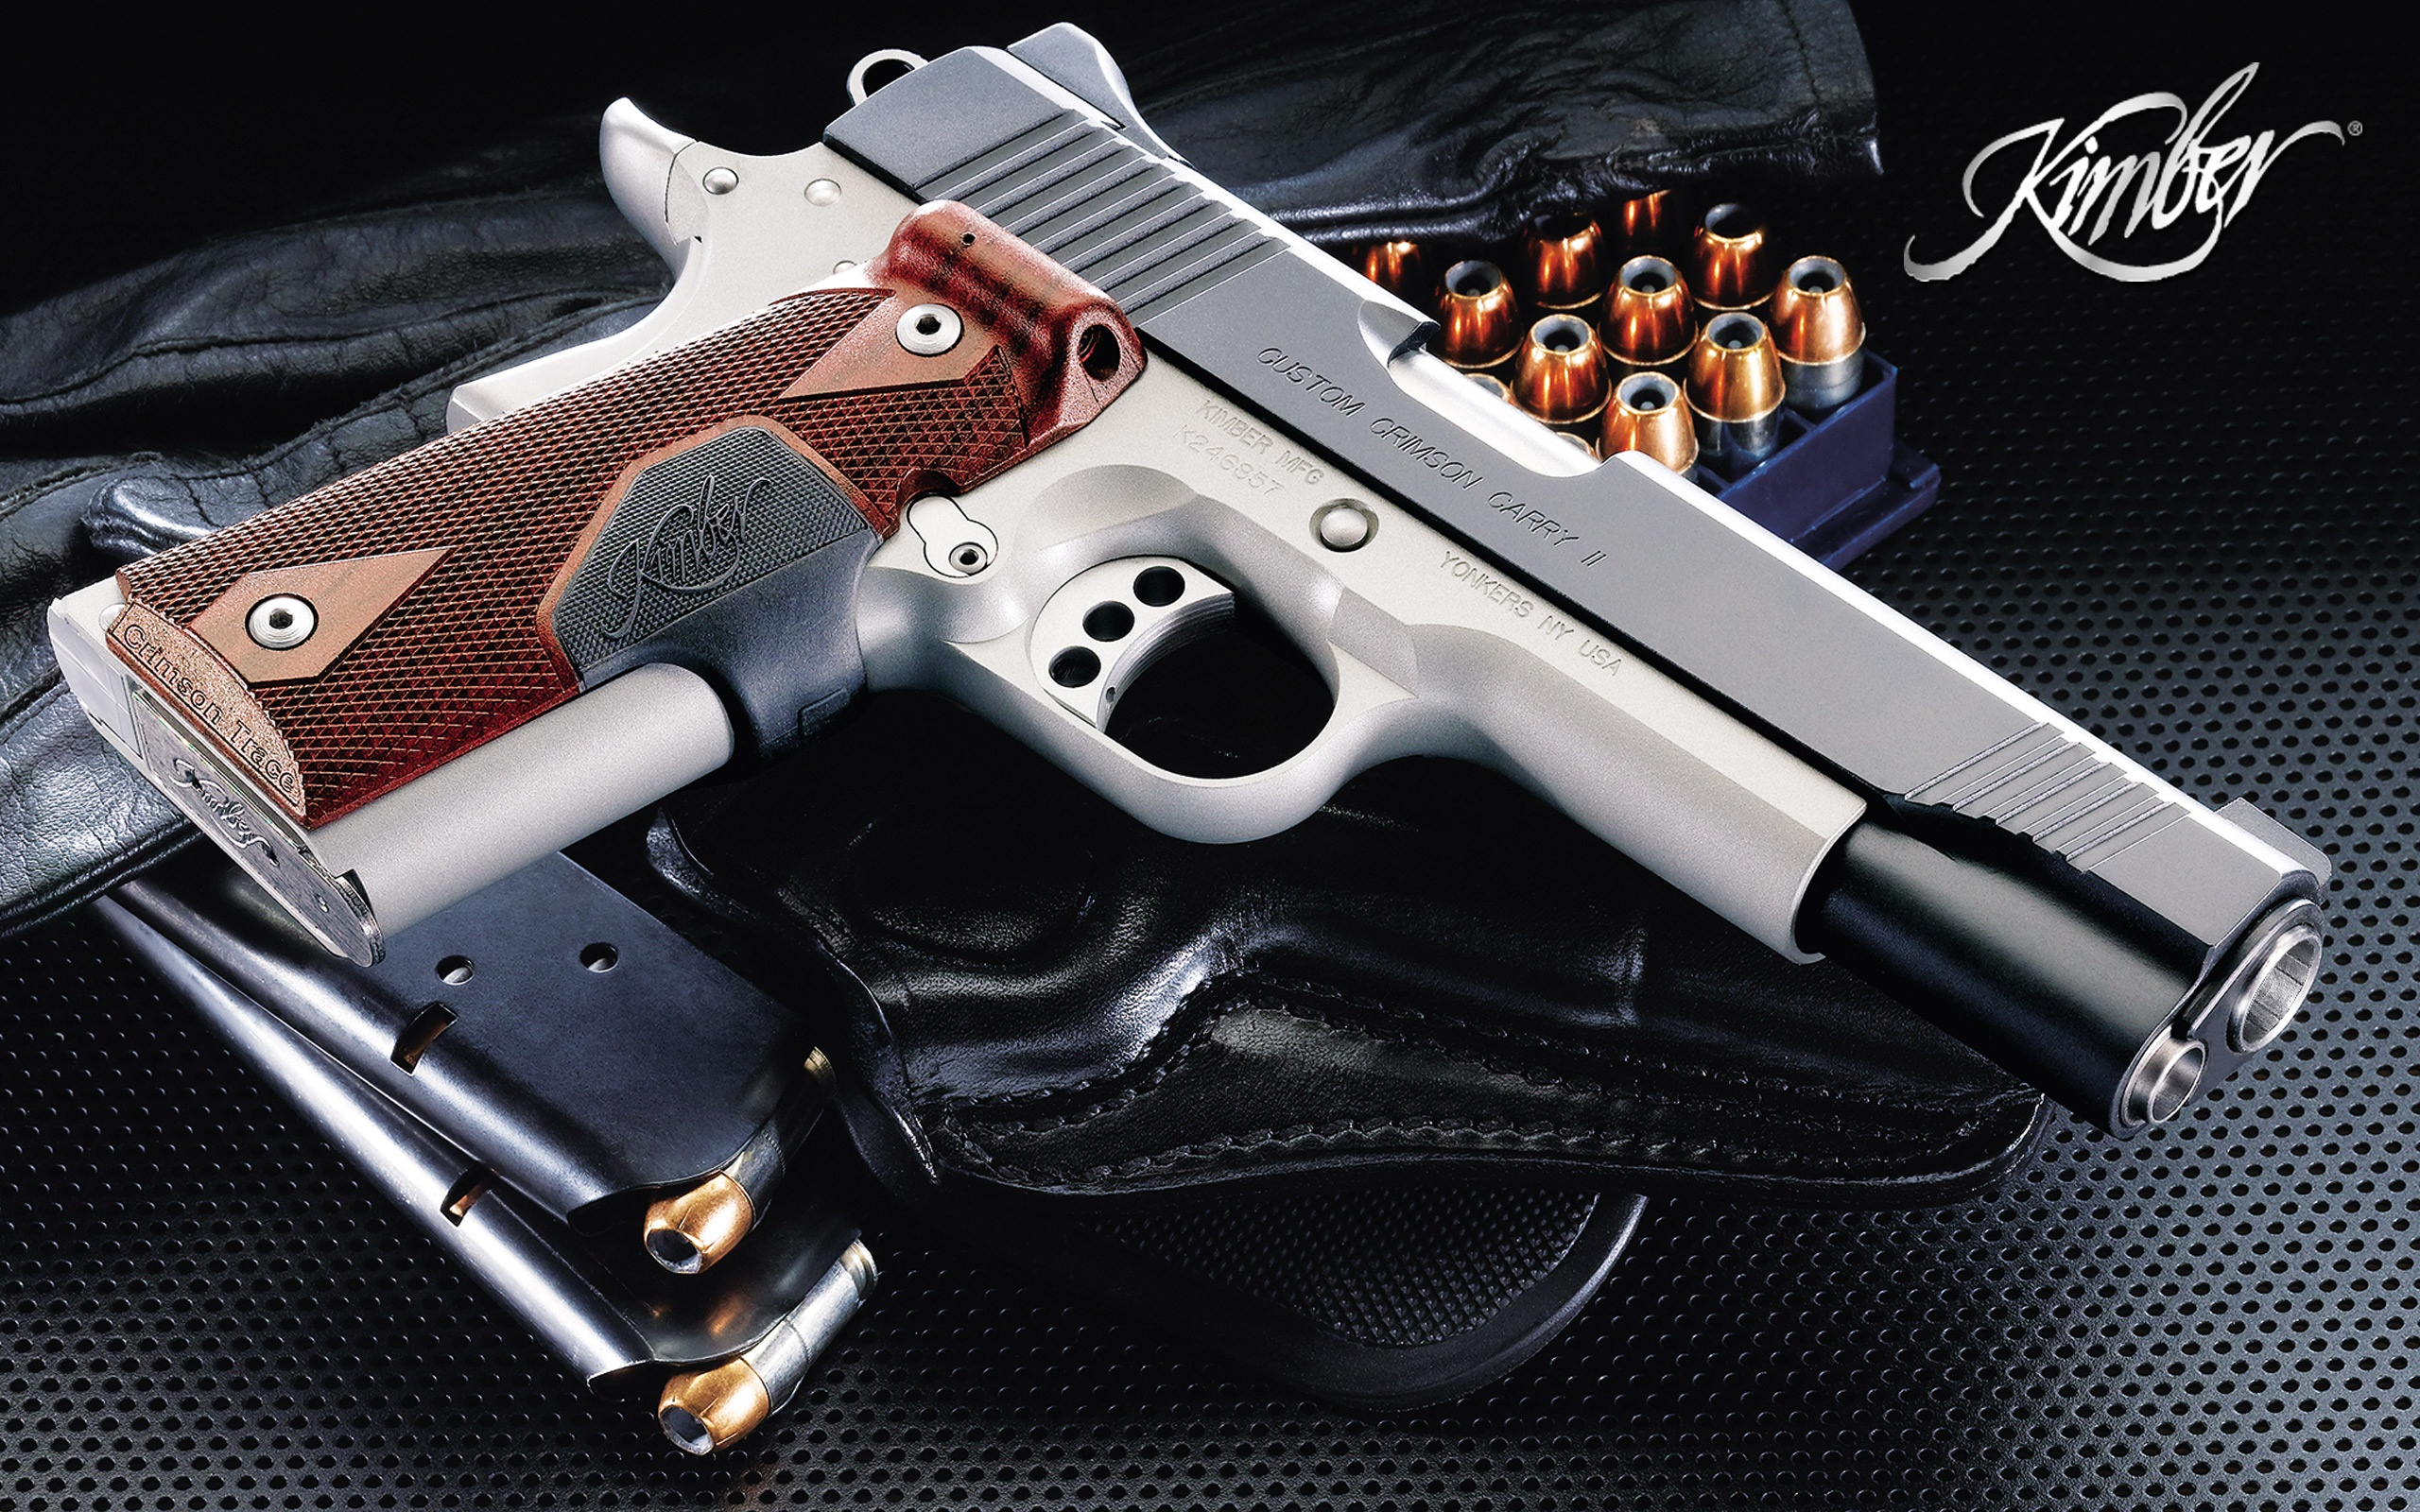 Kimber Pistol Wallpapers and Background Images   stmednet 2560x1600